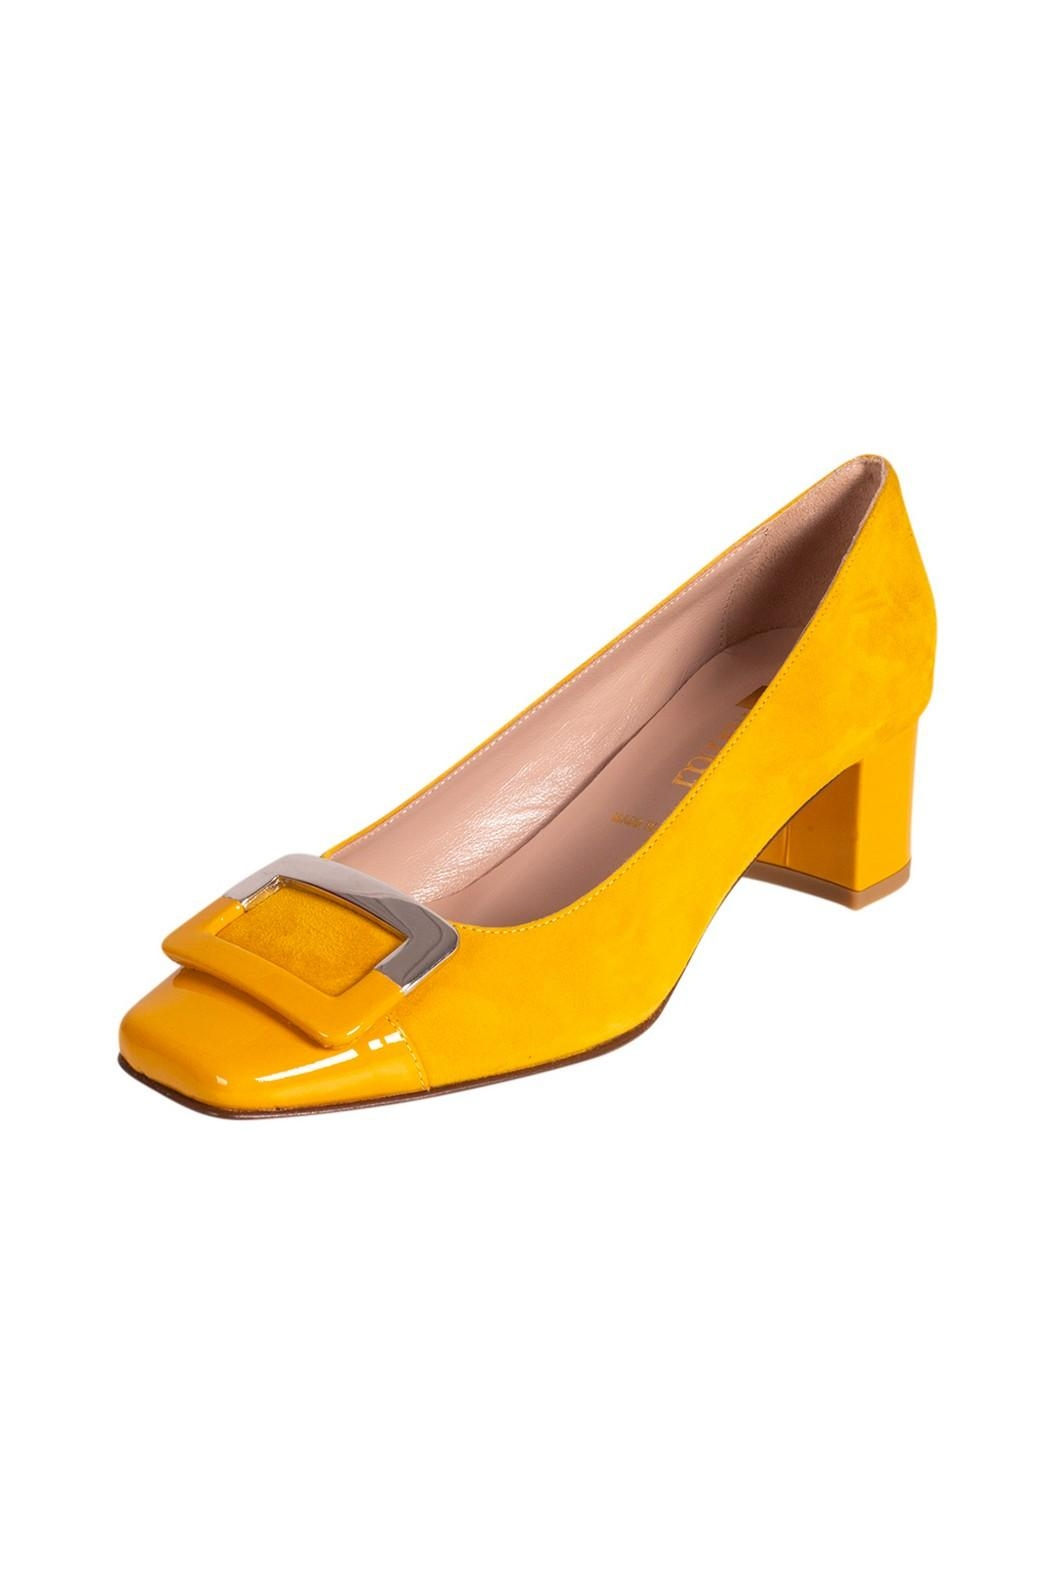 Pascucci Yellow Suede Pump - Front Full Image